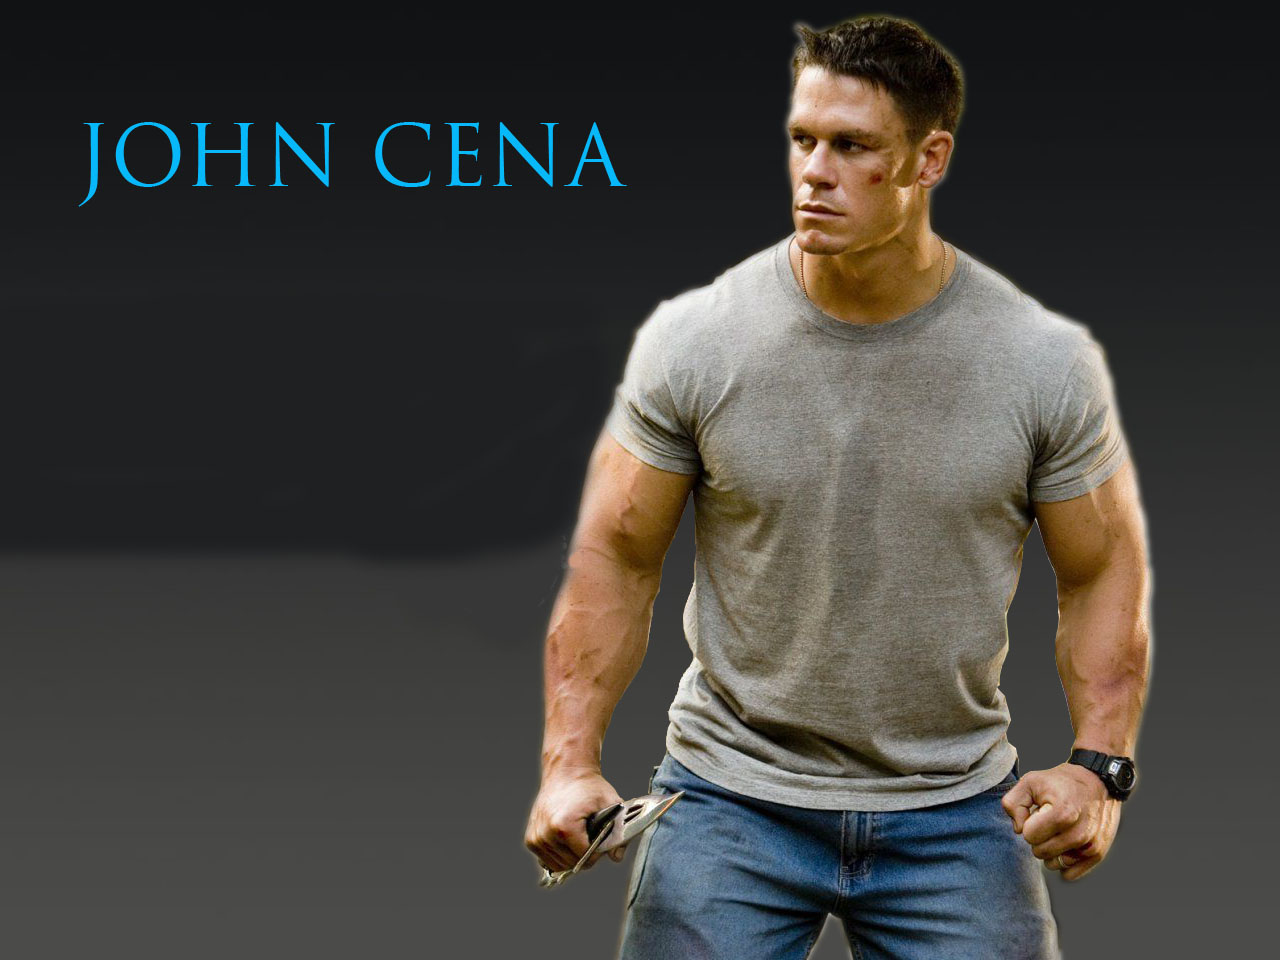 JOHN CENA LATEST WALLPAPERS HD WALLPAPERS 1280x960